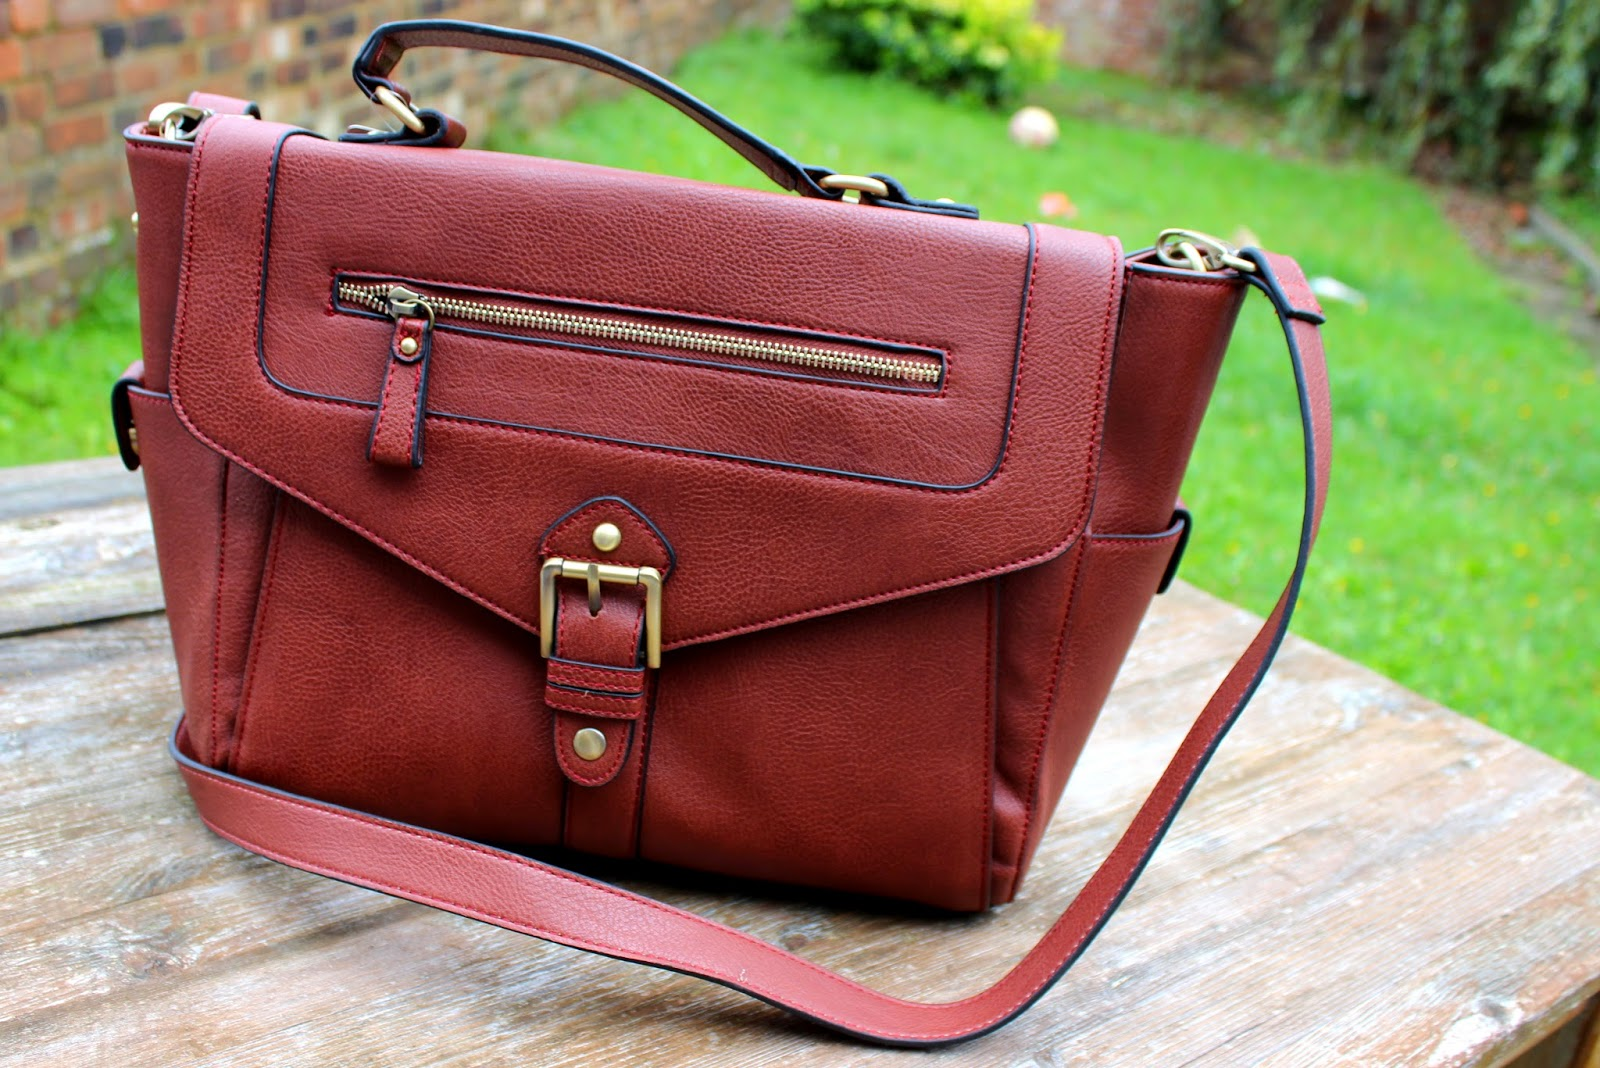 UK Lifestyle, Fashion & Beauty Blog: Accessorize - The Willesden Satchel  review